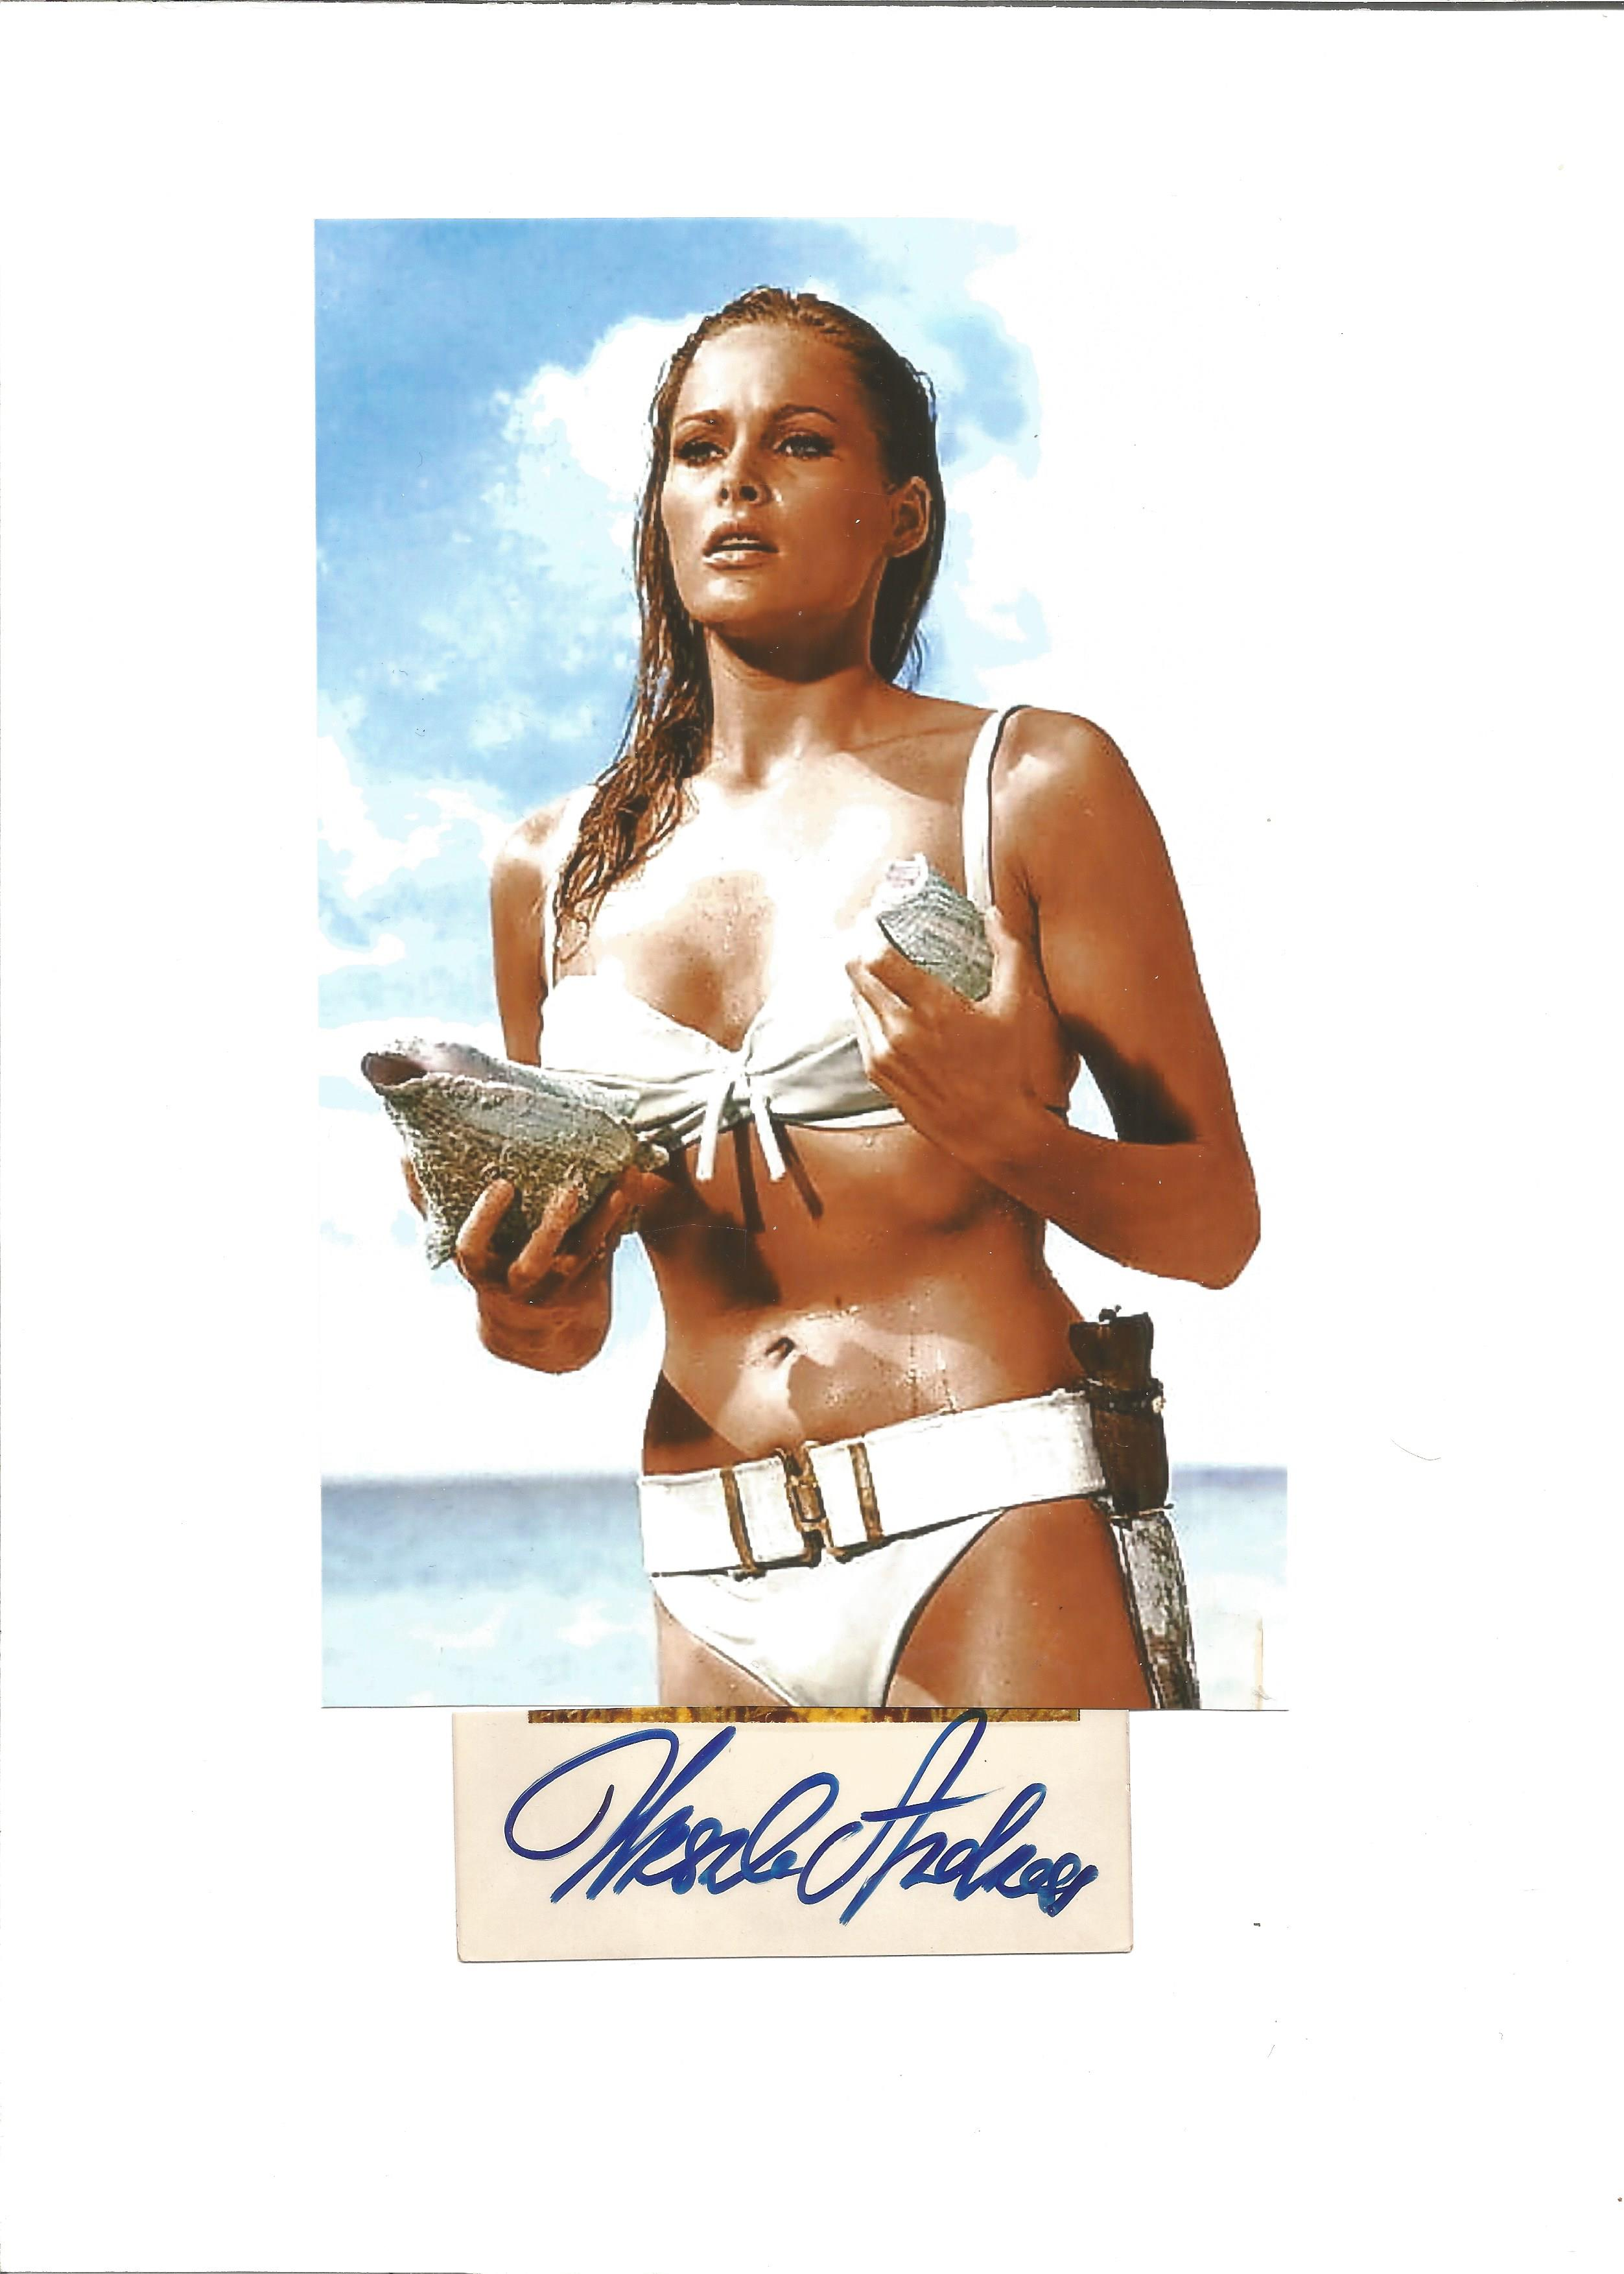 Ursula Andress signed signature card, attached to A4 card, with a 8x5 colour photo also attached.